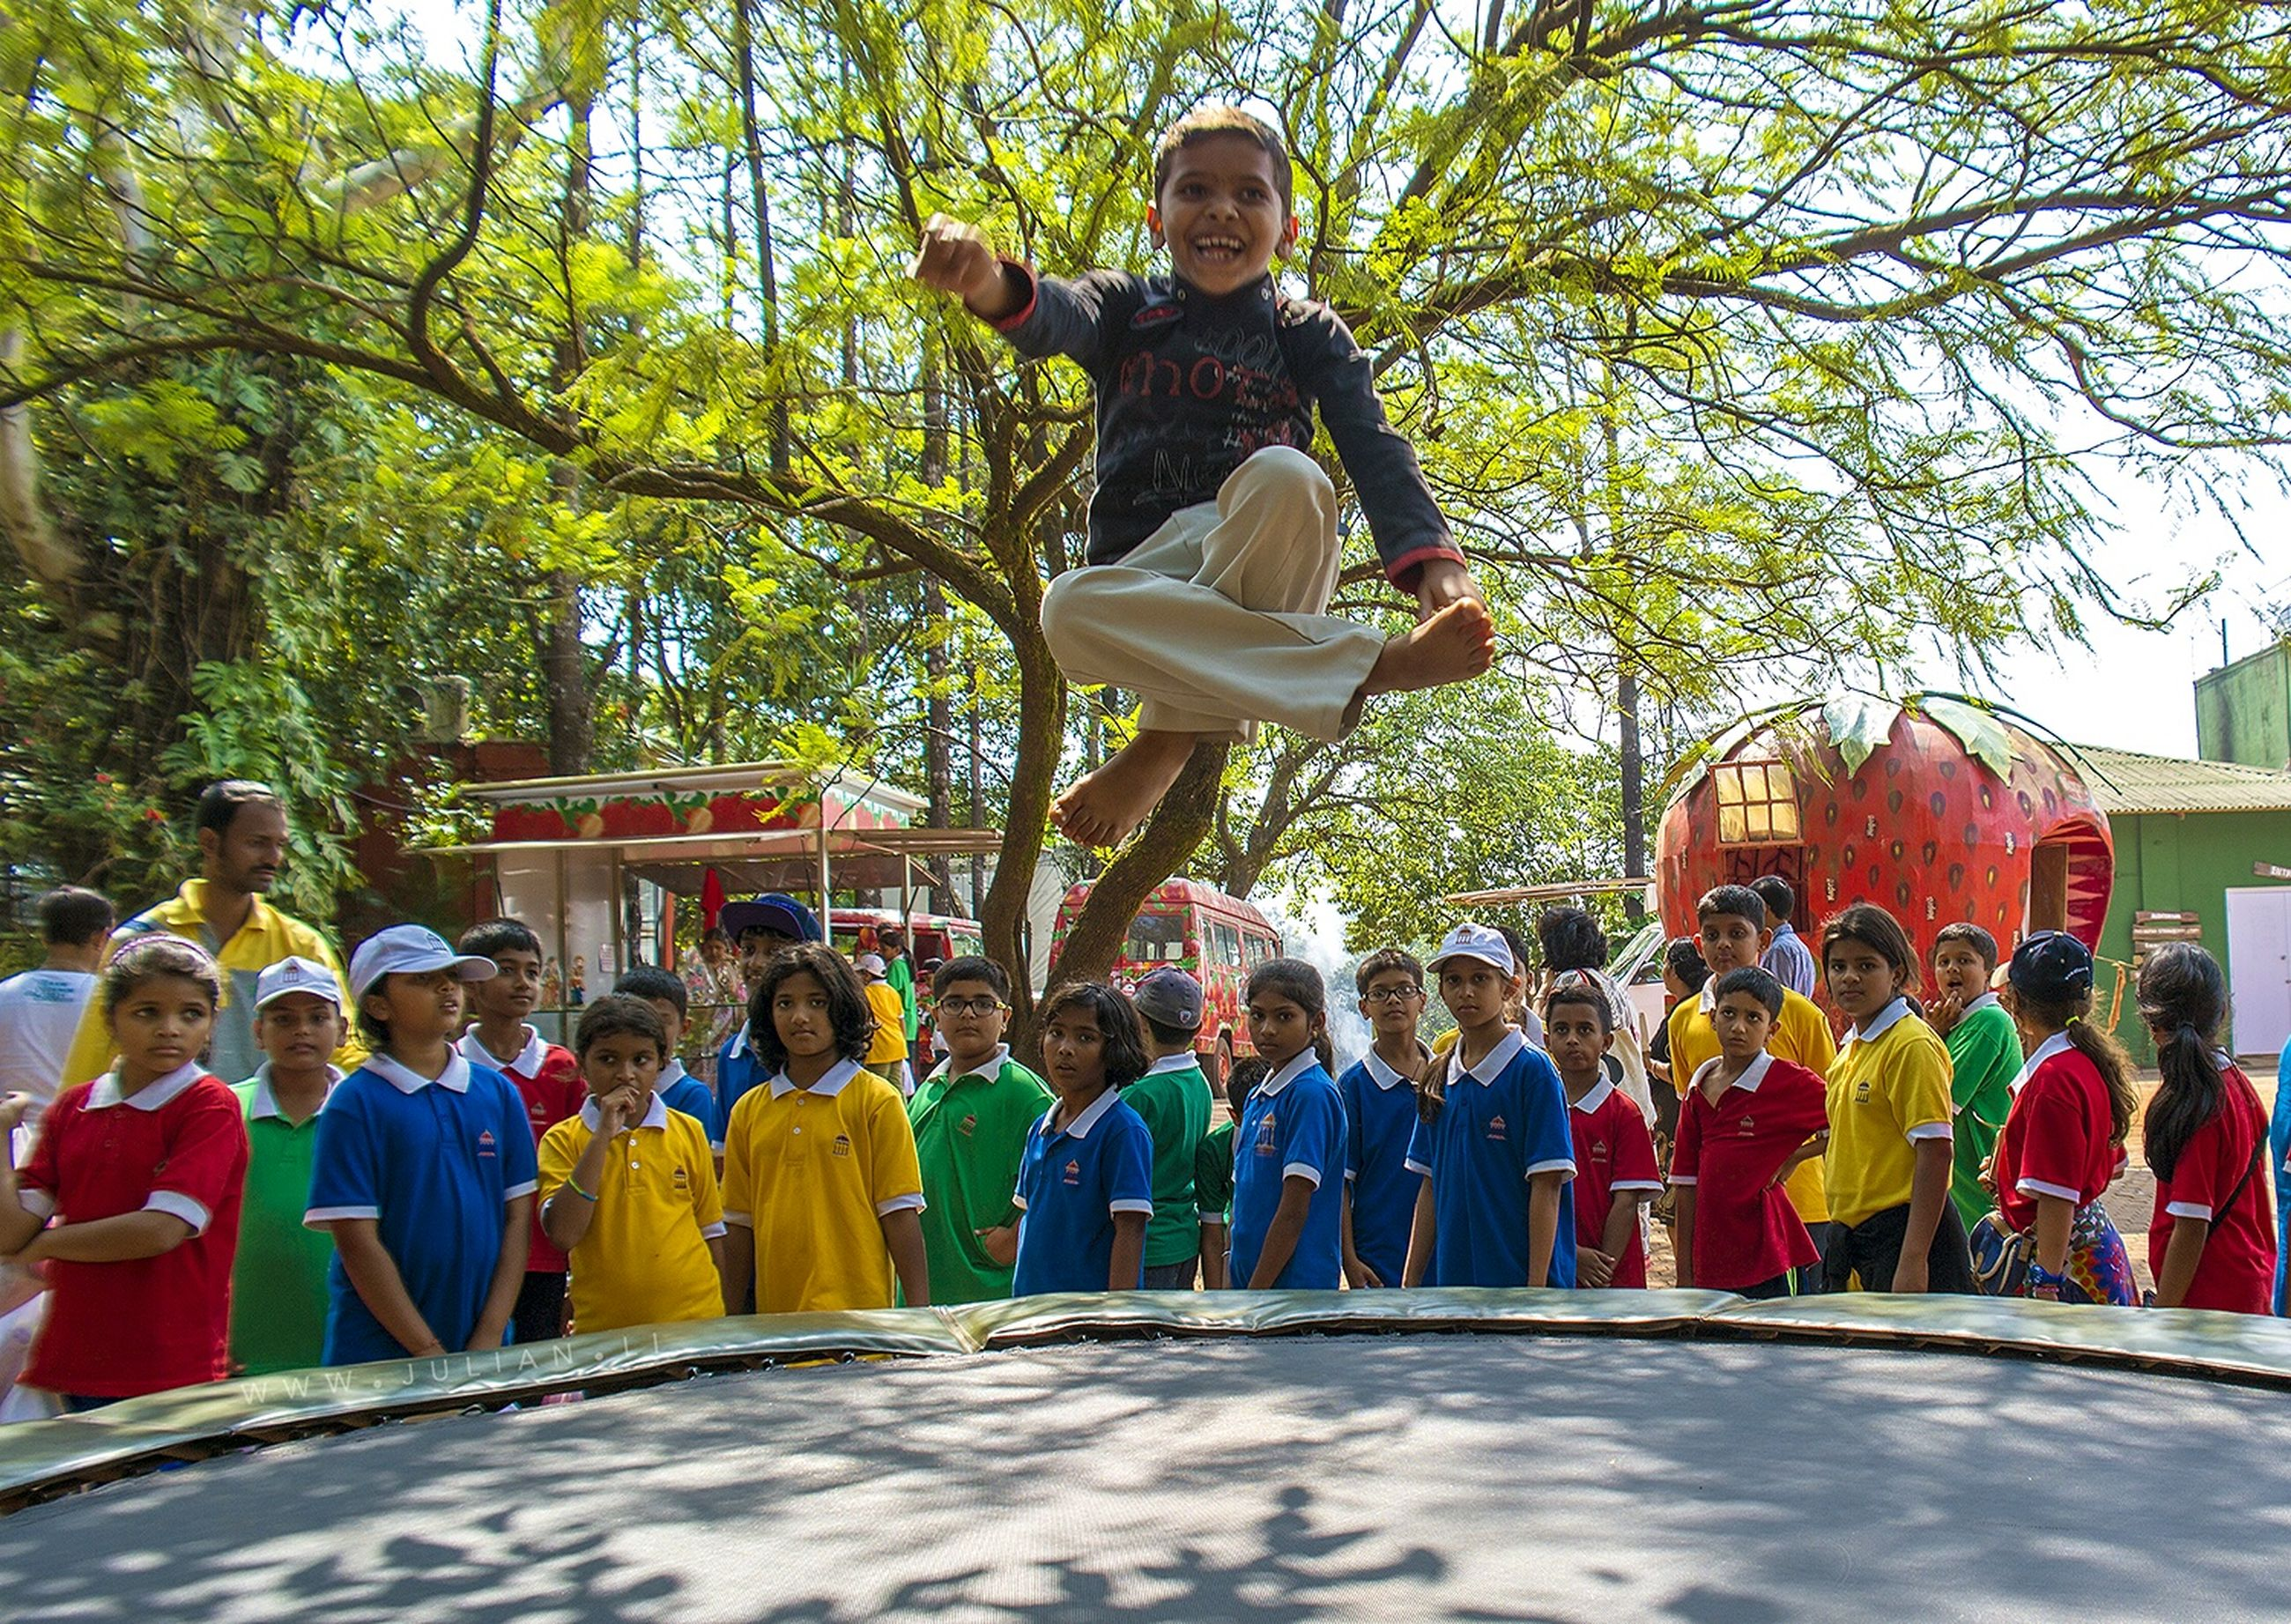 full length, lifestyles, casual clothing, leisure activity, young adult, person, tree, standing, happiness, front view, enjoyment, young women, fun, jumping, smiling, looking at camera, mid-air